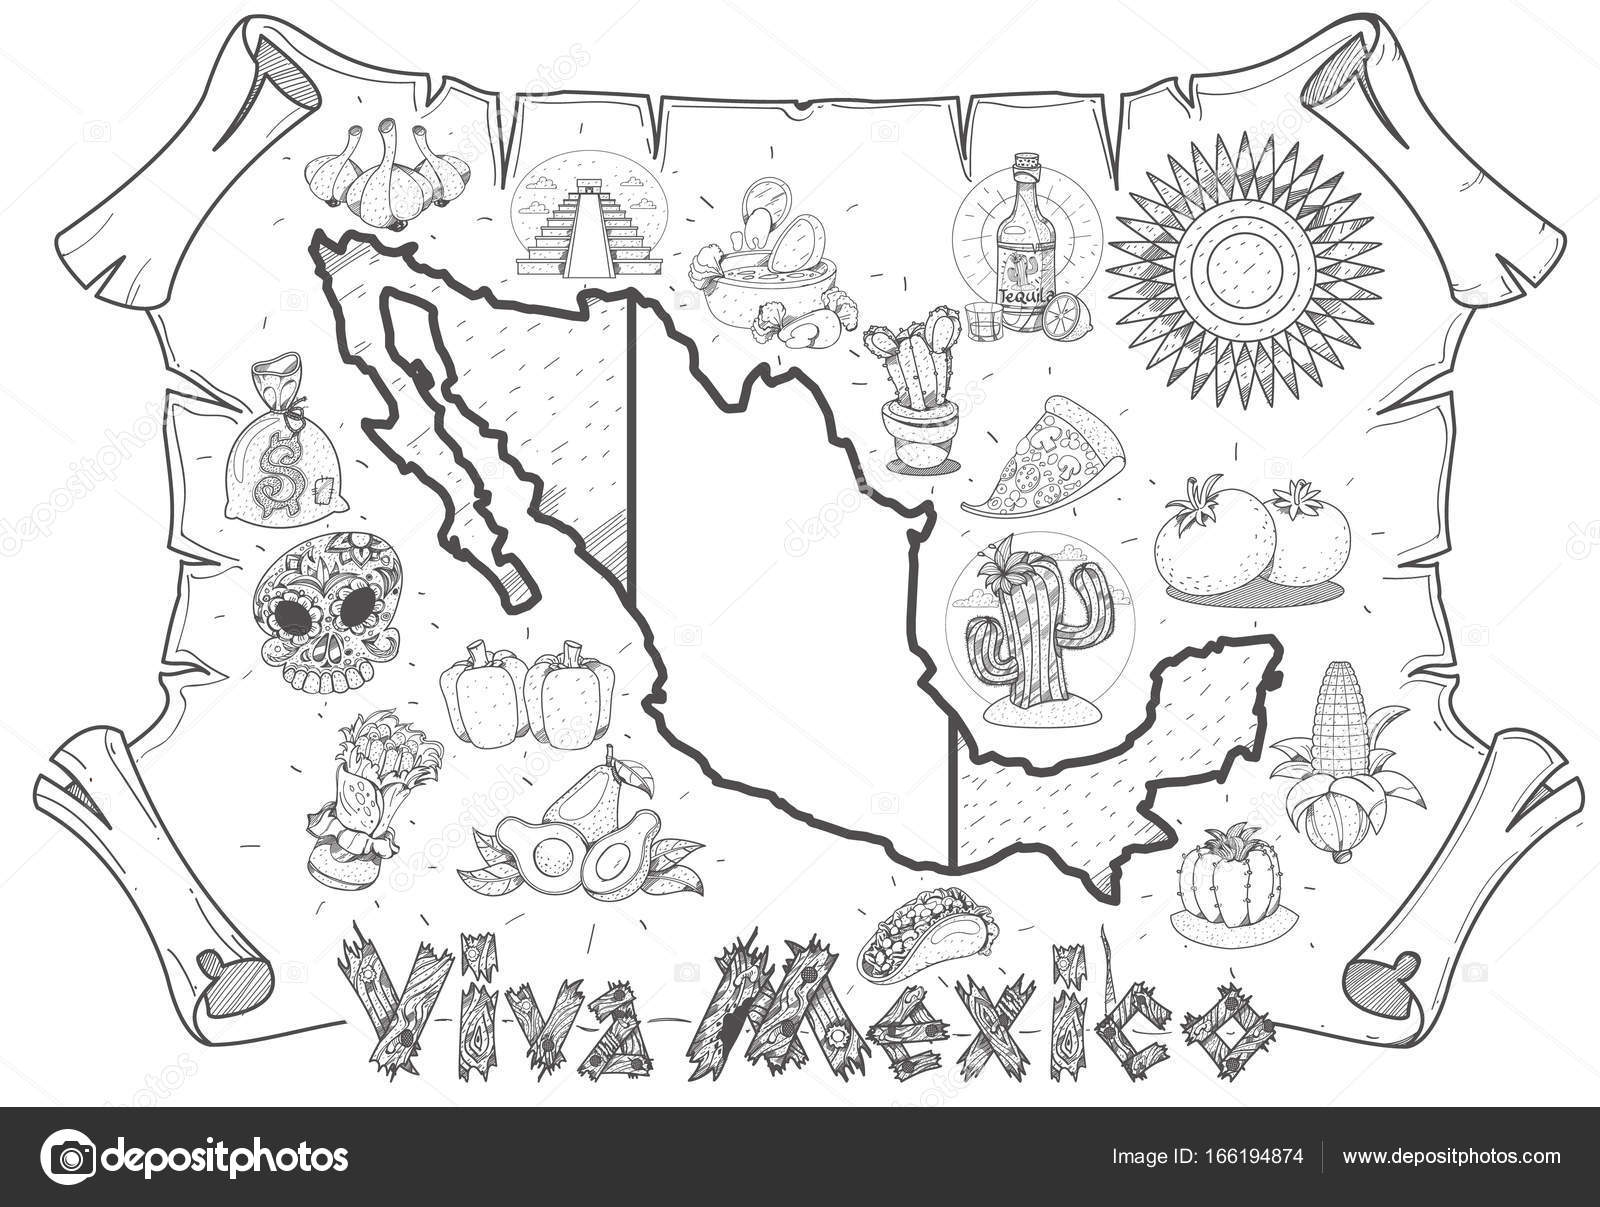 Mexico map drawing at getdrawings free for personal use mexico mexico map drawing 34 mexico map